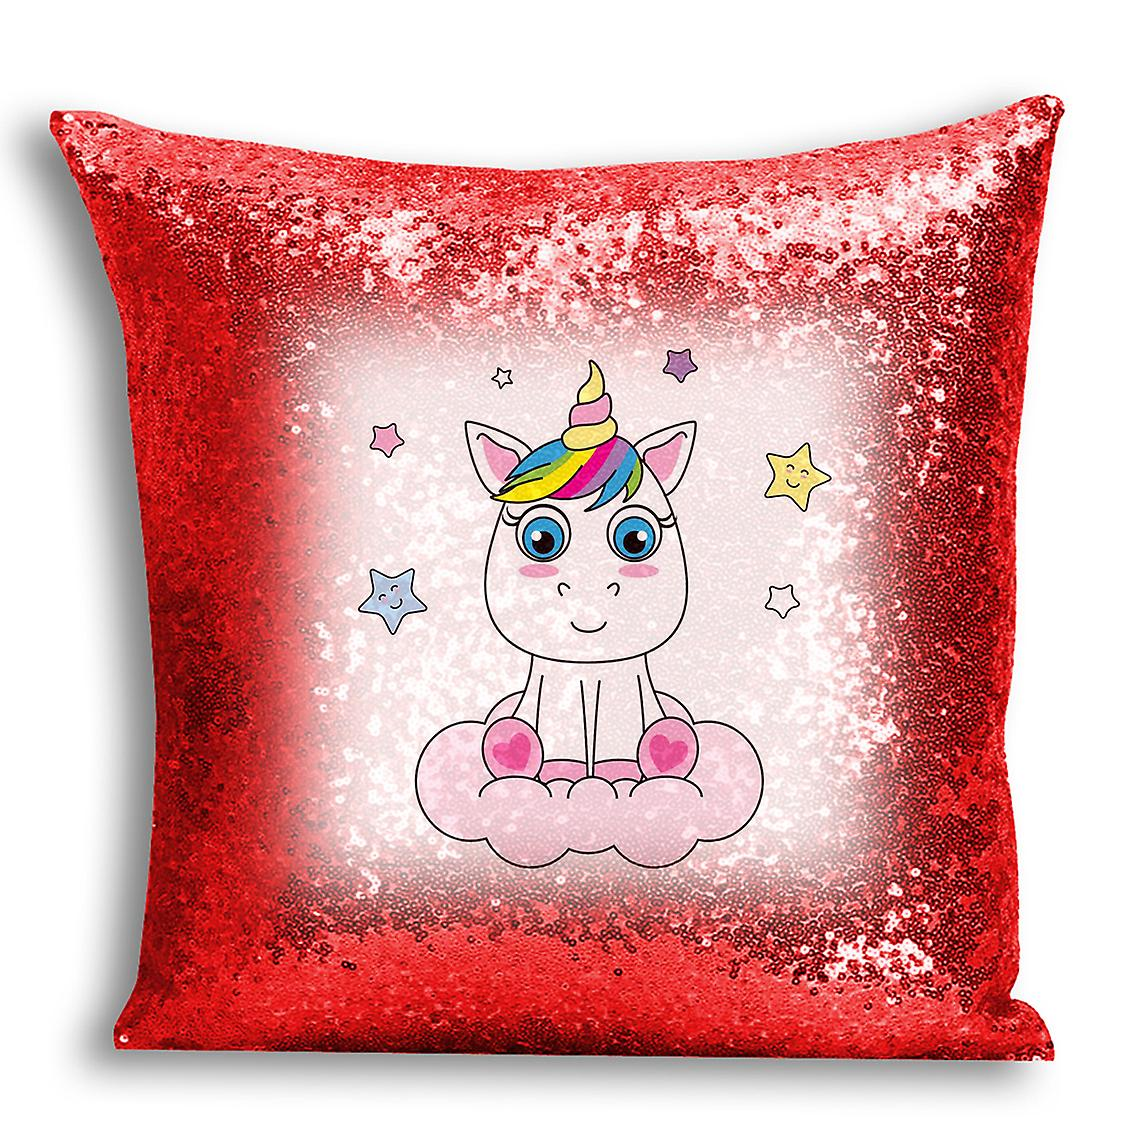 Design Red With Sequin Cover I Inserted Decor Printed tronixsUnicorn Home 8 CushionPillow For Pn0Okw